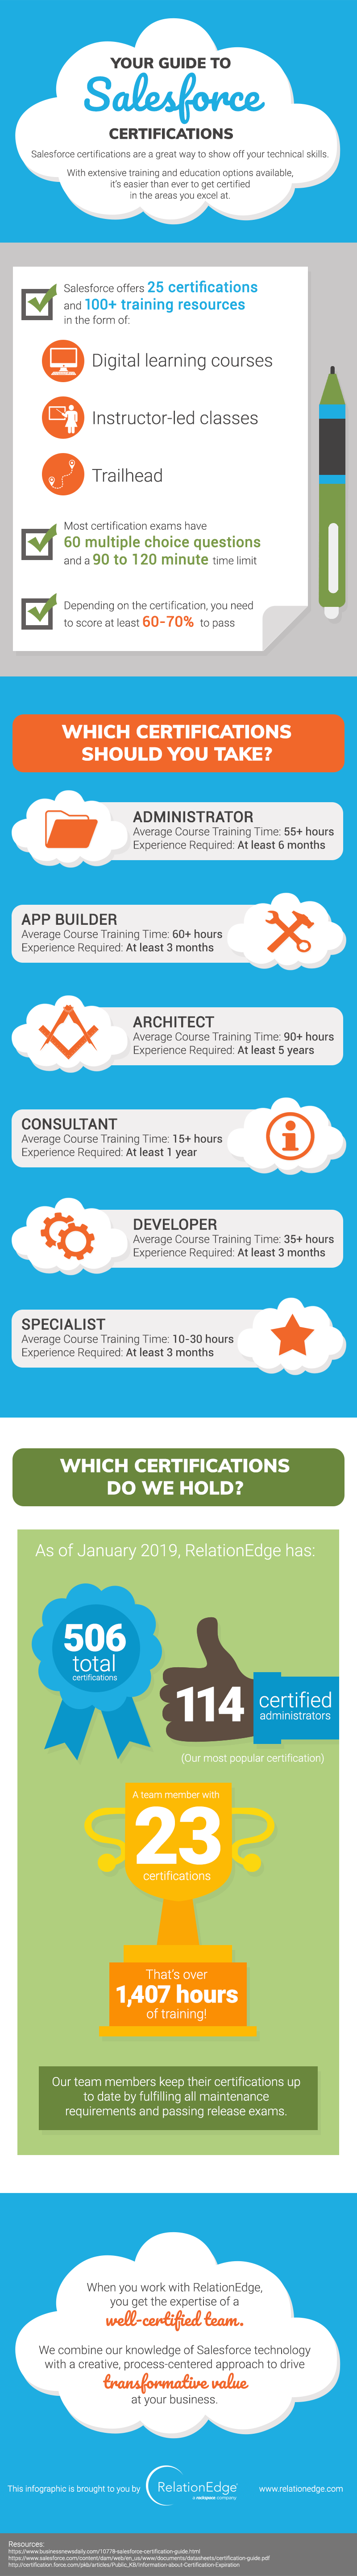 salesforce certifications infographic age certification crm customer rely systems businesses experience than